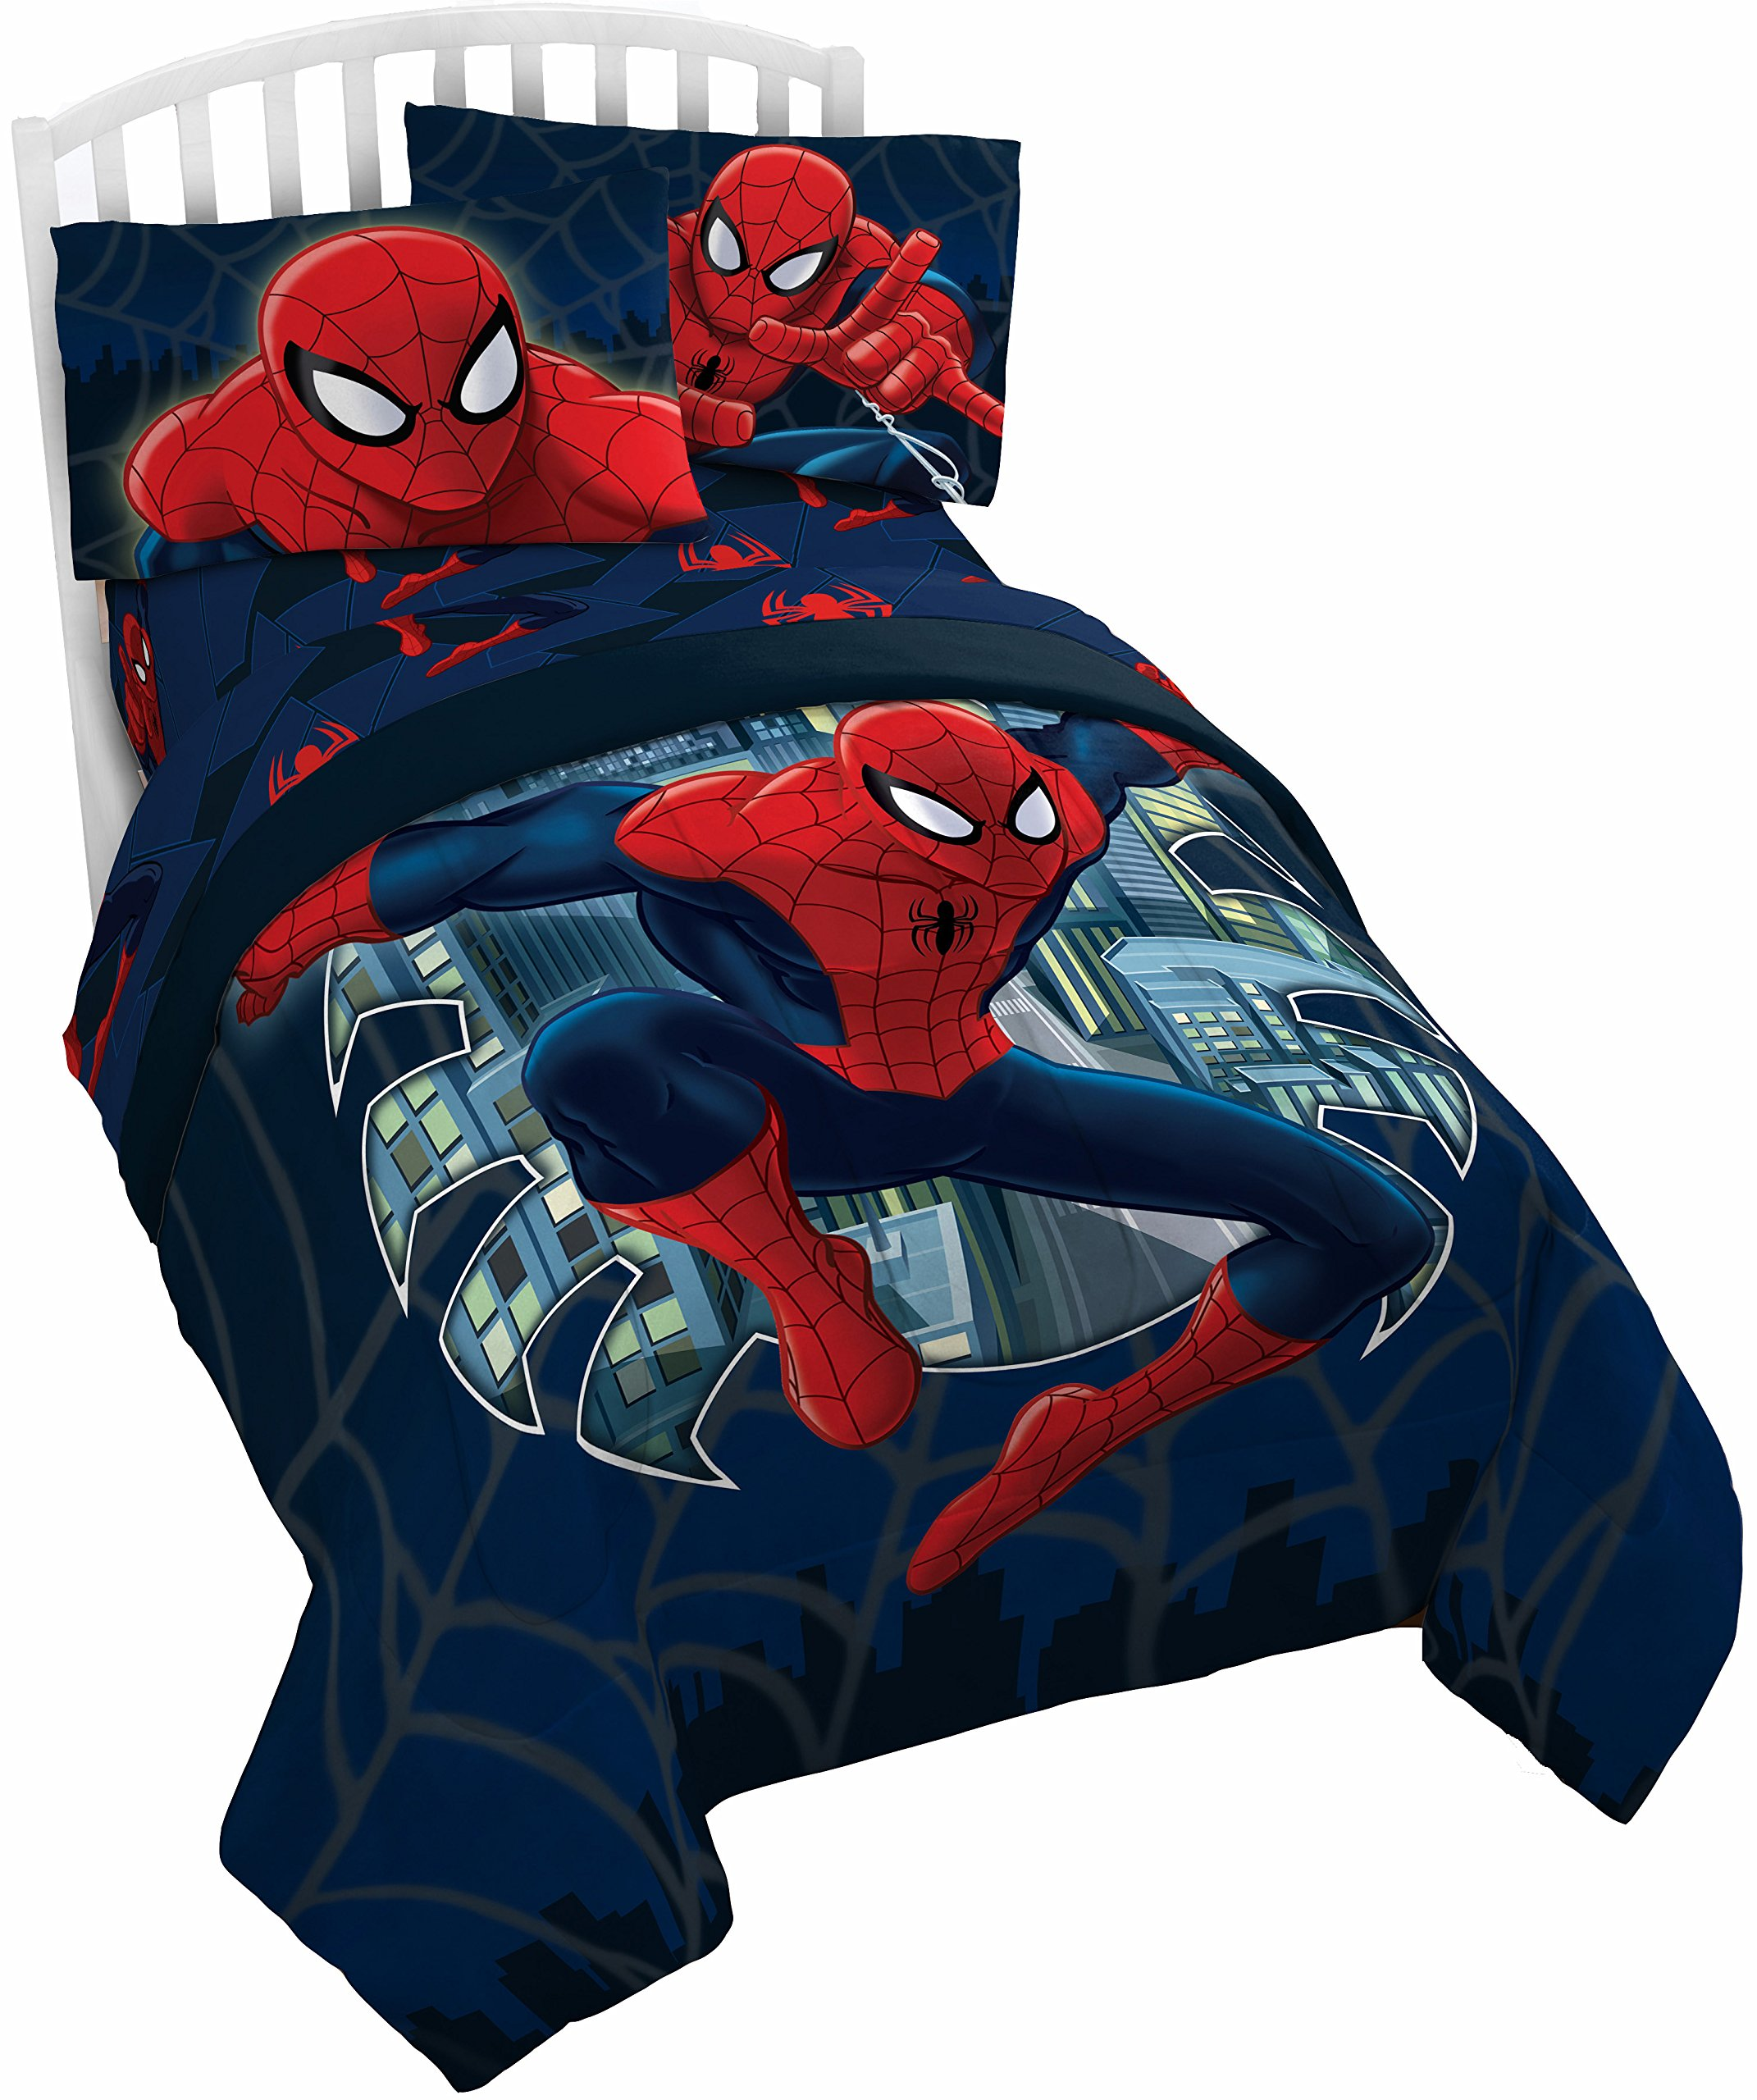 Marvel Spider Man Saving the Day Twin/Full Comforter - Super Soft Kids Reversible Bedding features Spiderman - Fade Resistant Polyester Microfiber Fill (Official Product)